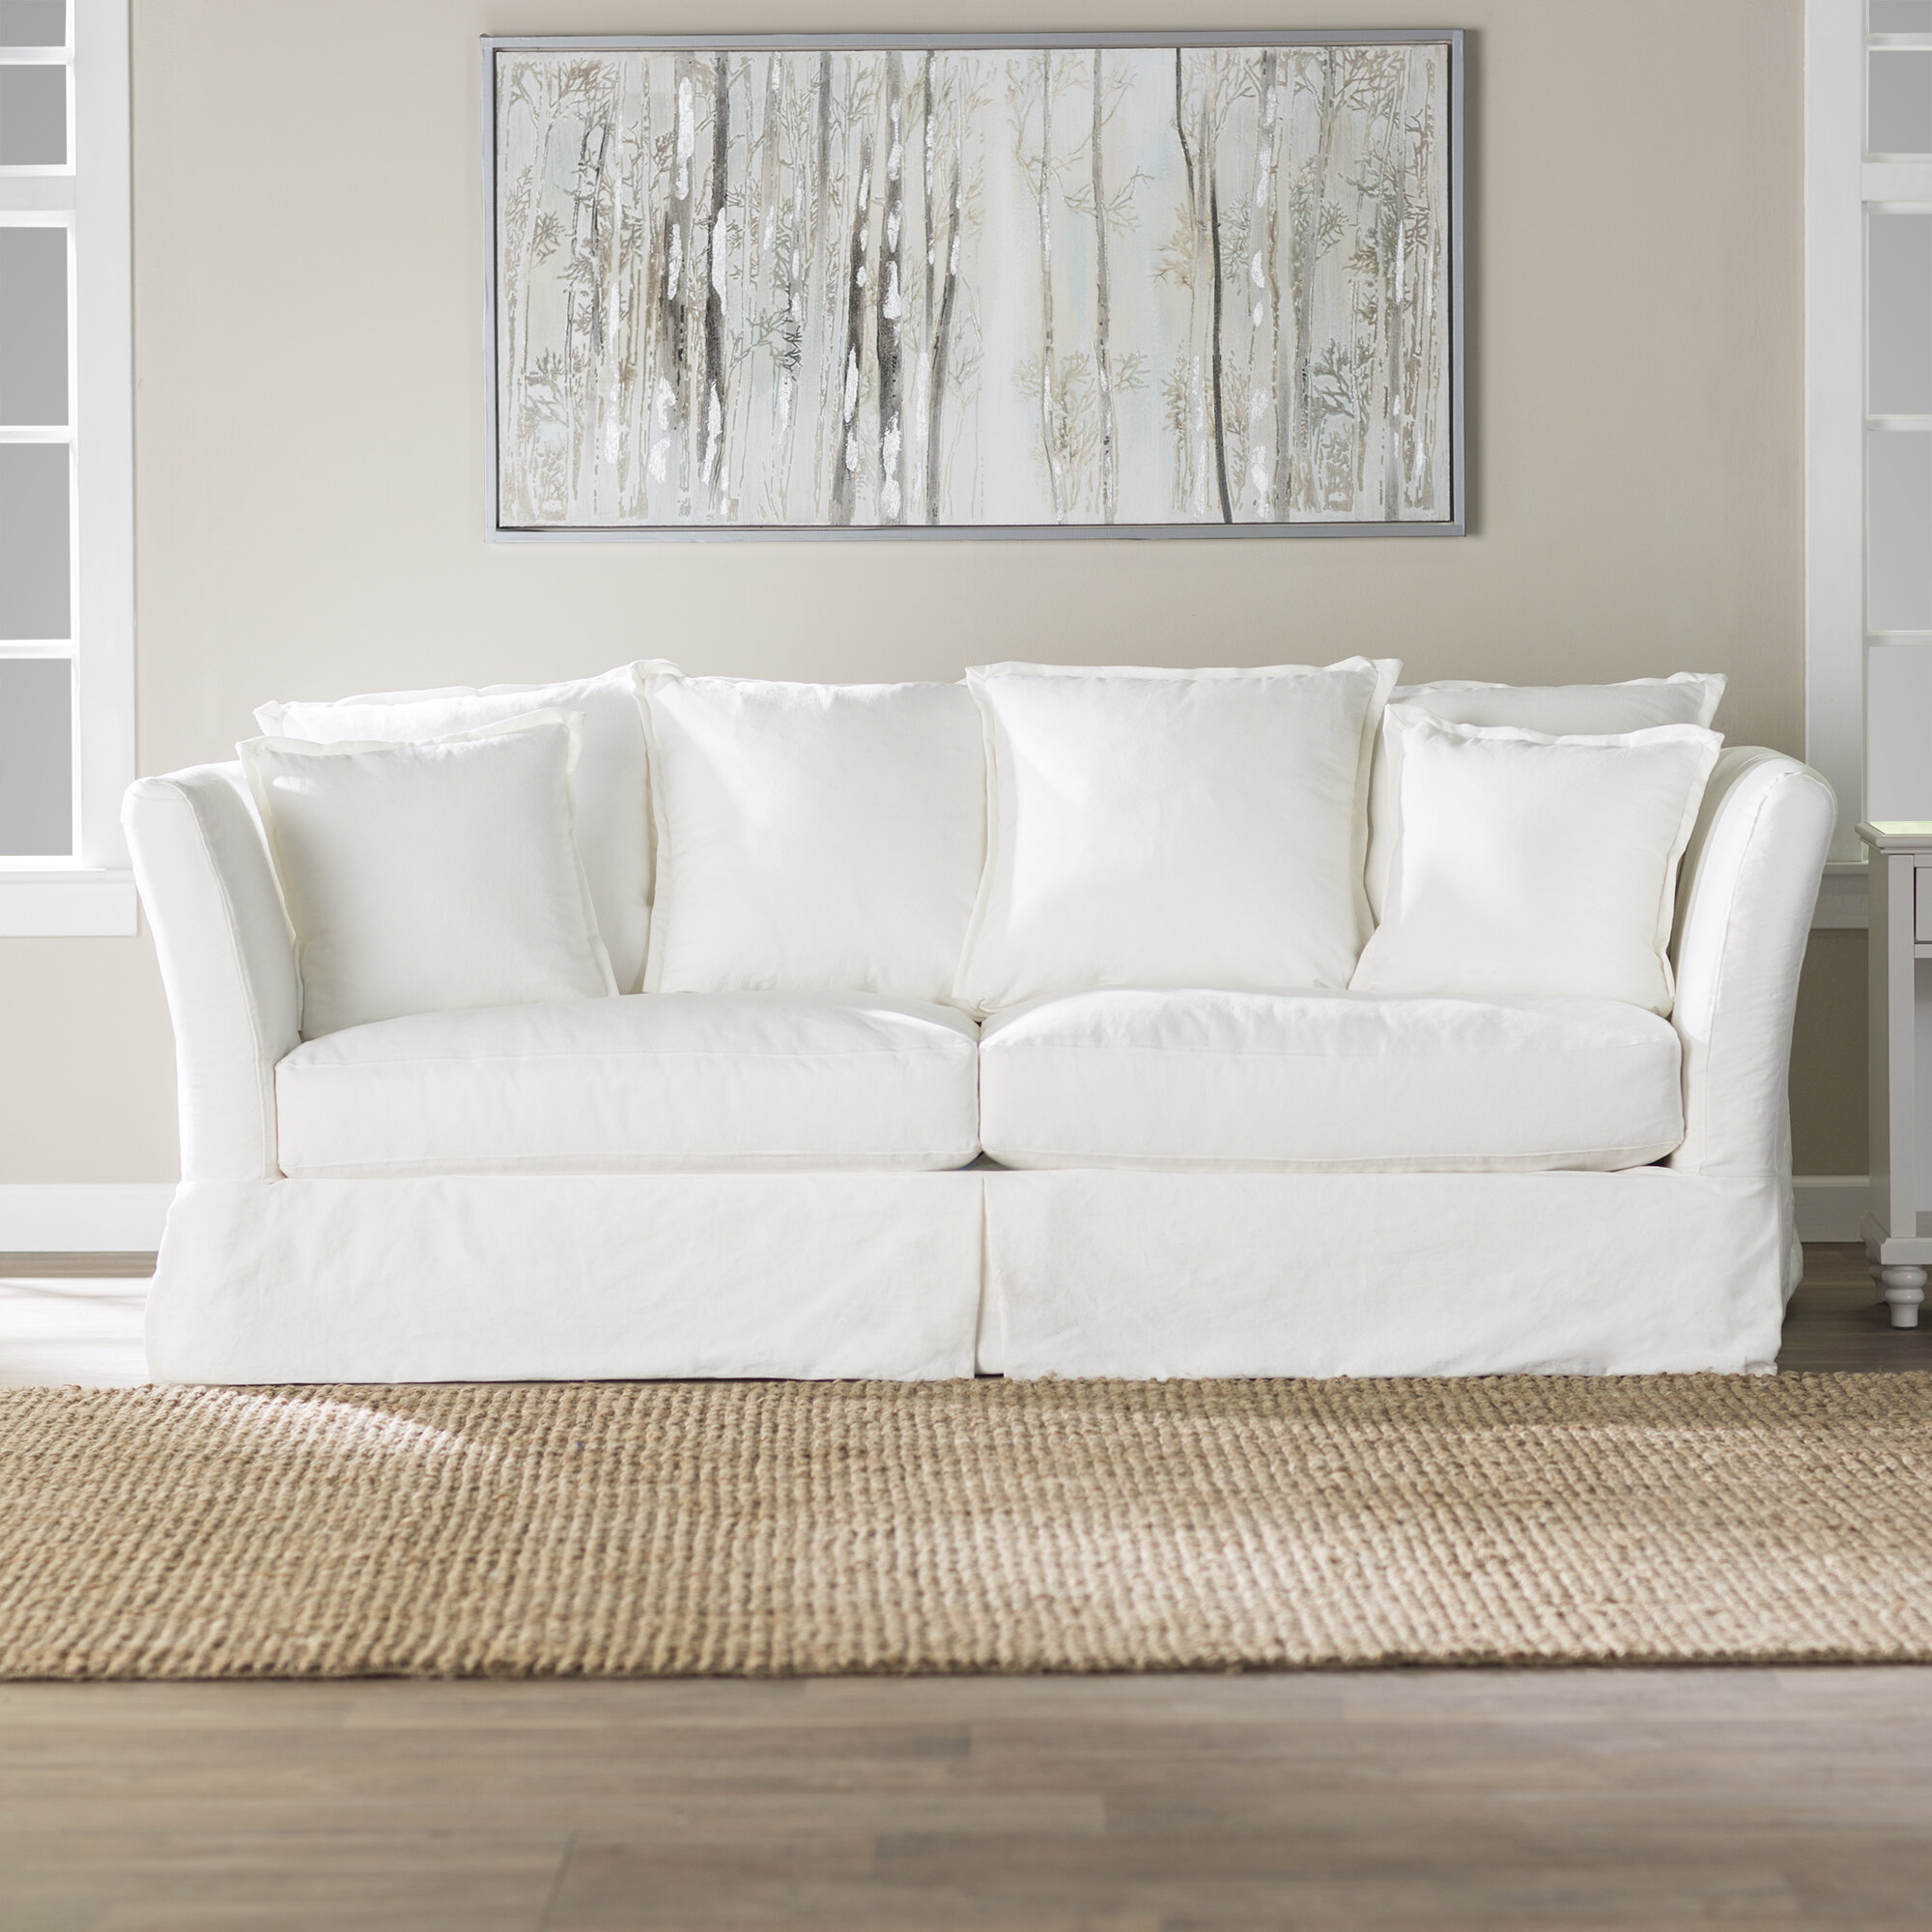 farmhouse slipcover shipping elizabeth product garden eco free overstock home today friendly sofa slipcovered